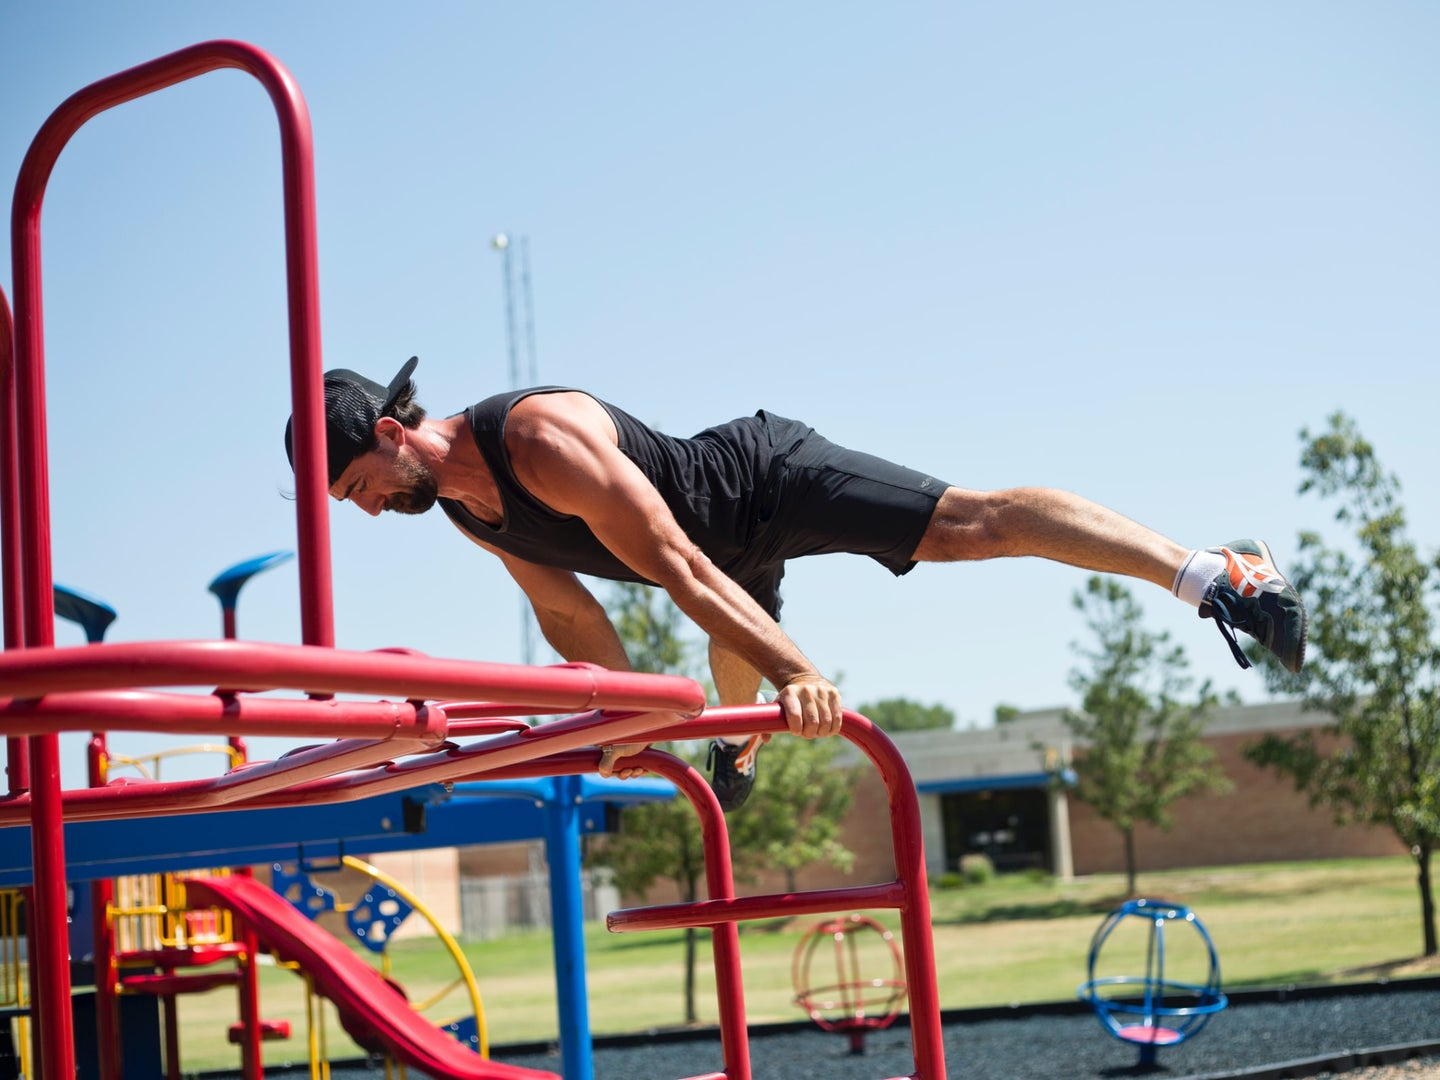 a man doing a strength exercise on a playground